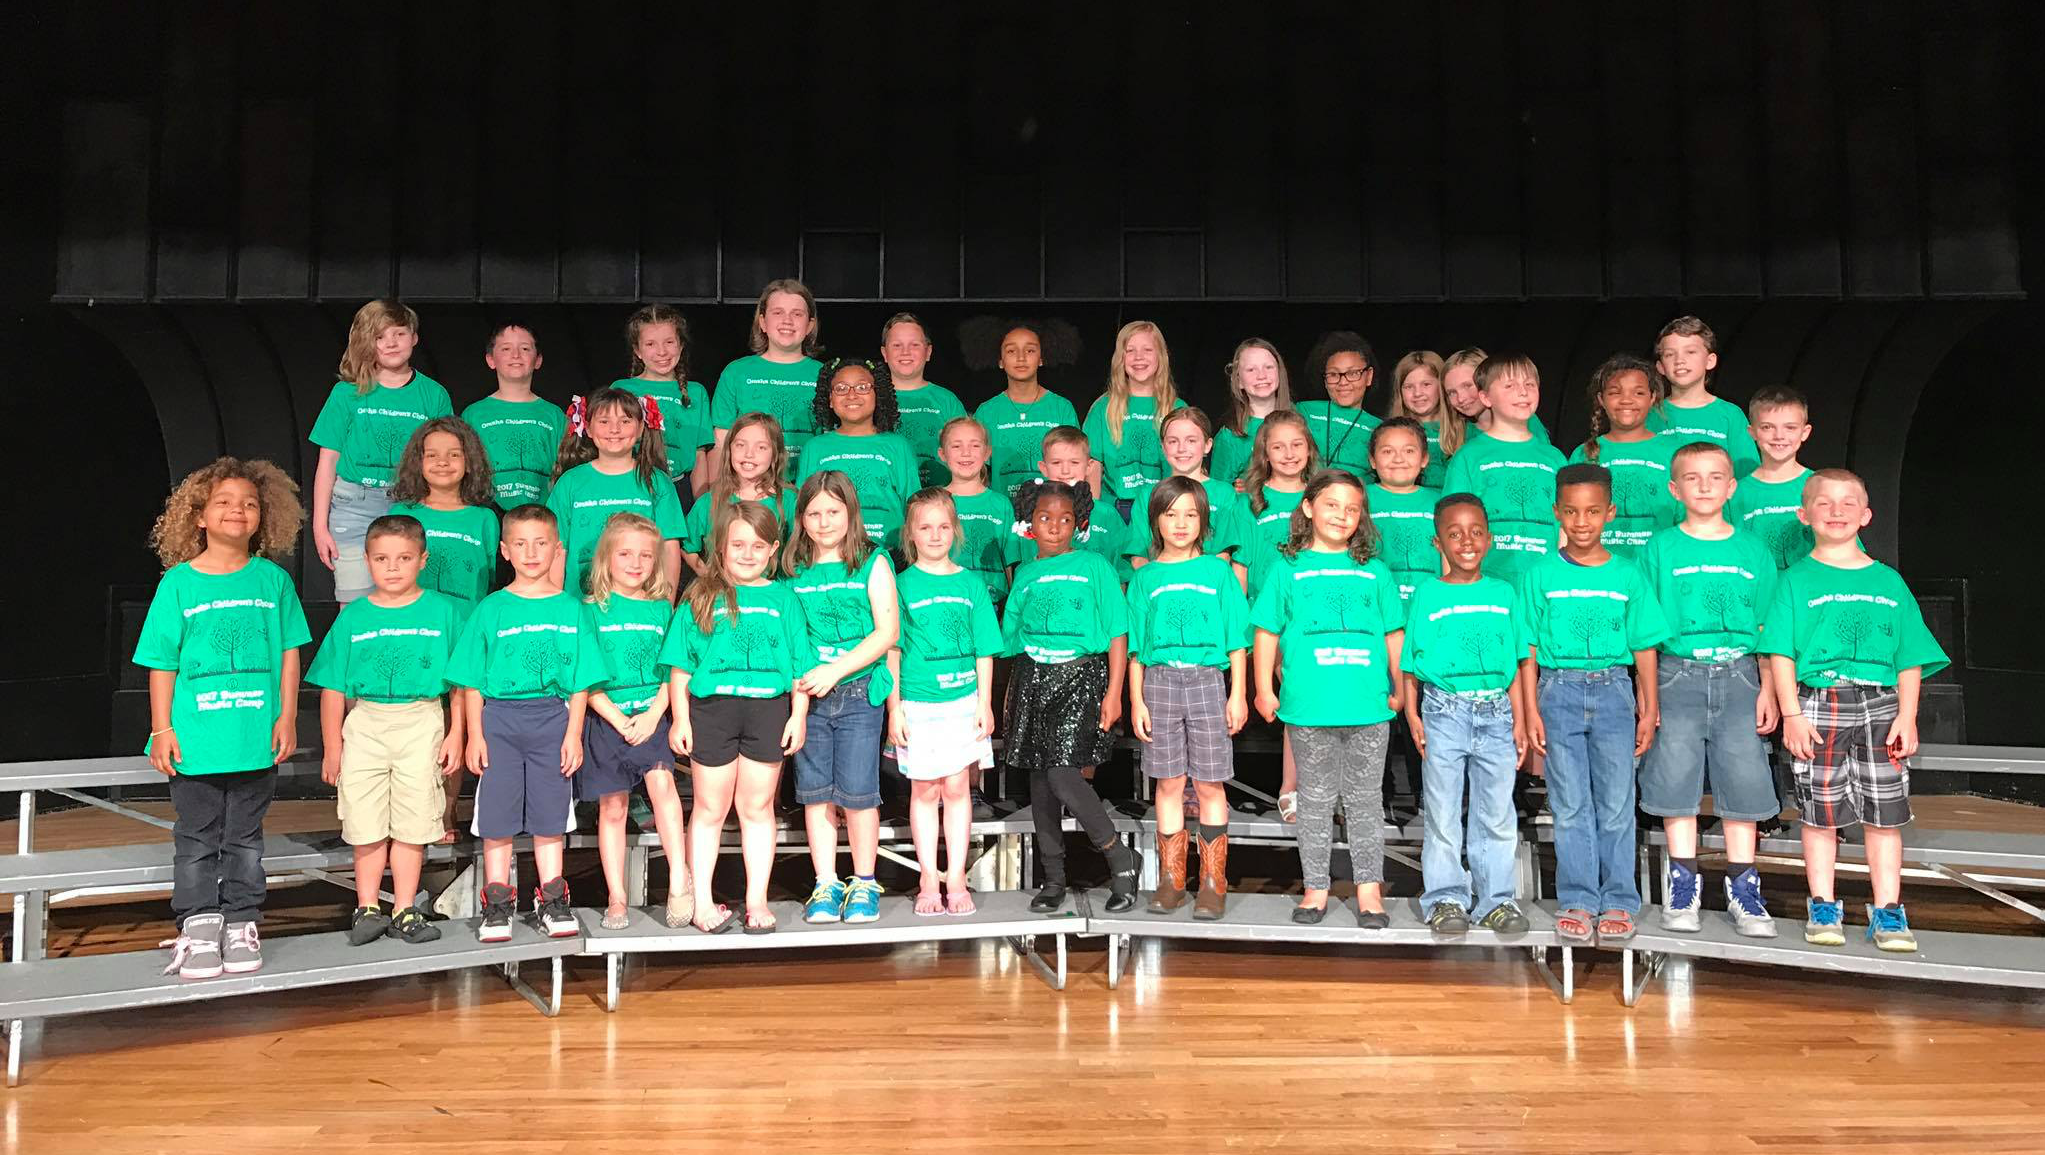 Omaha Childrens Choir 2